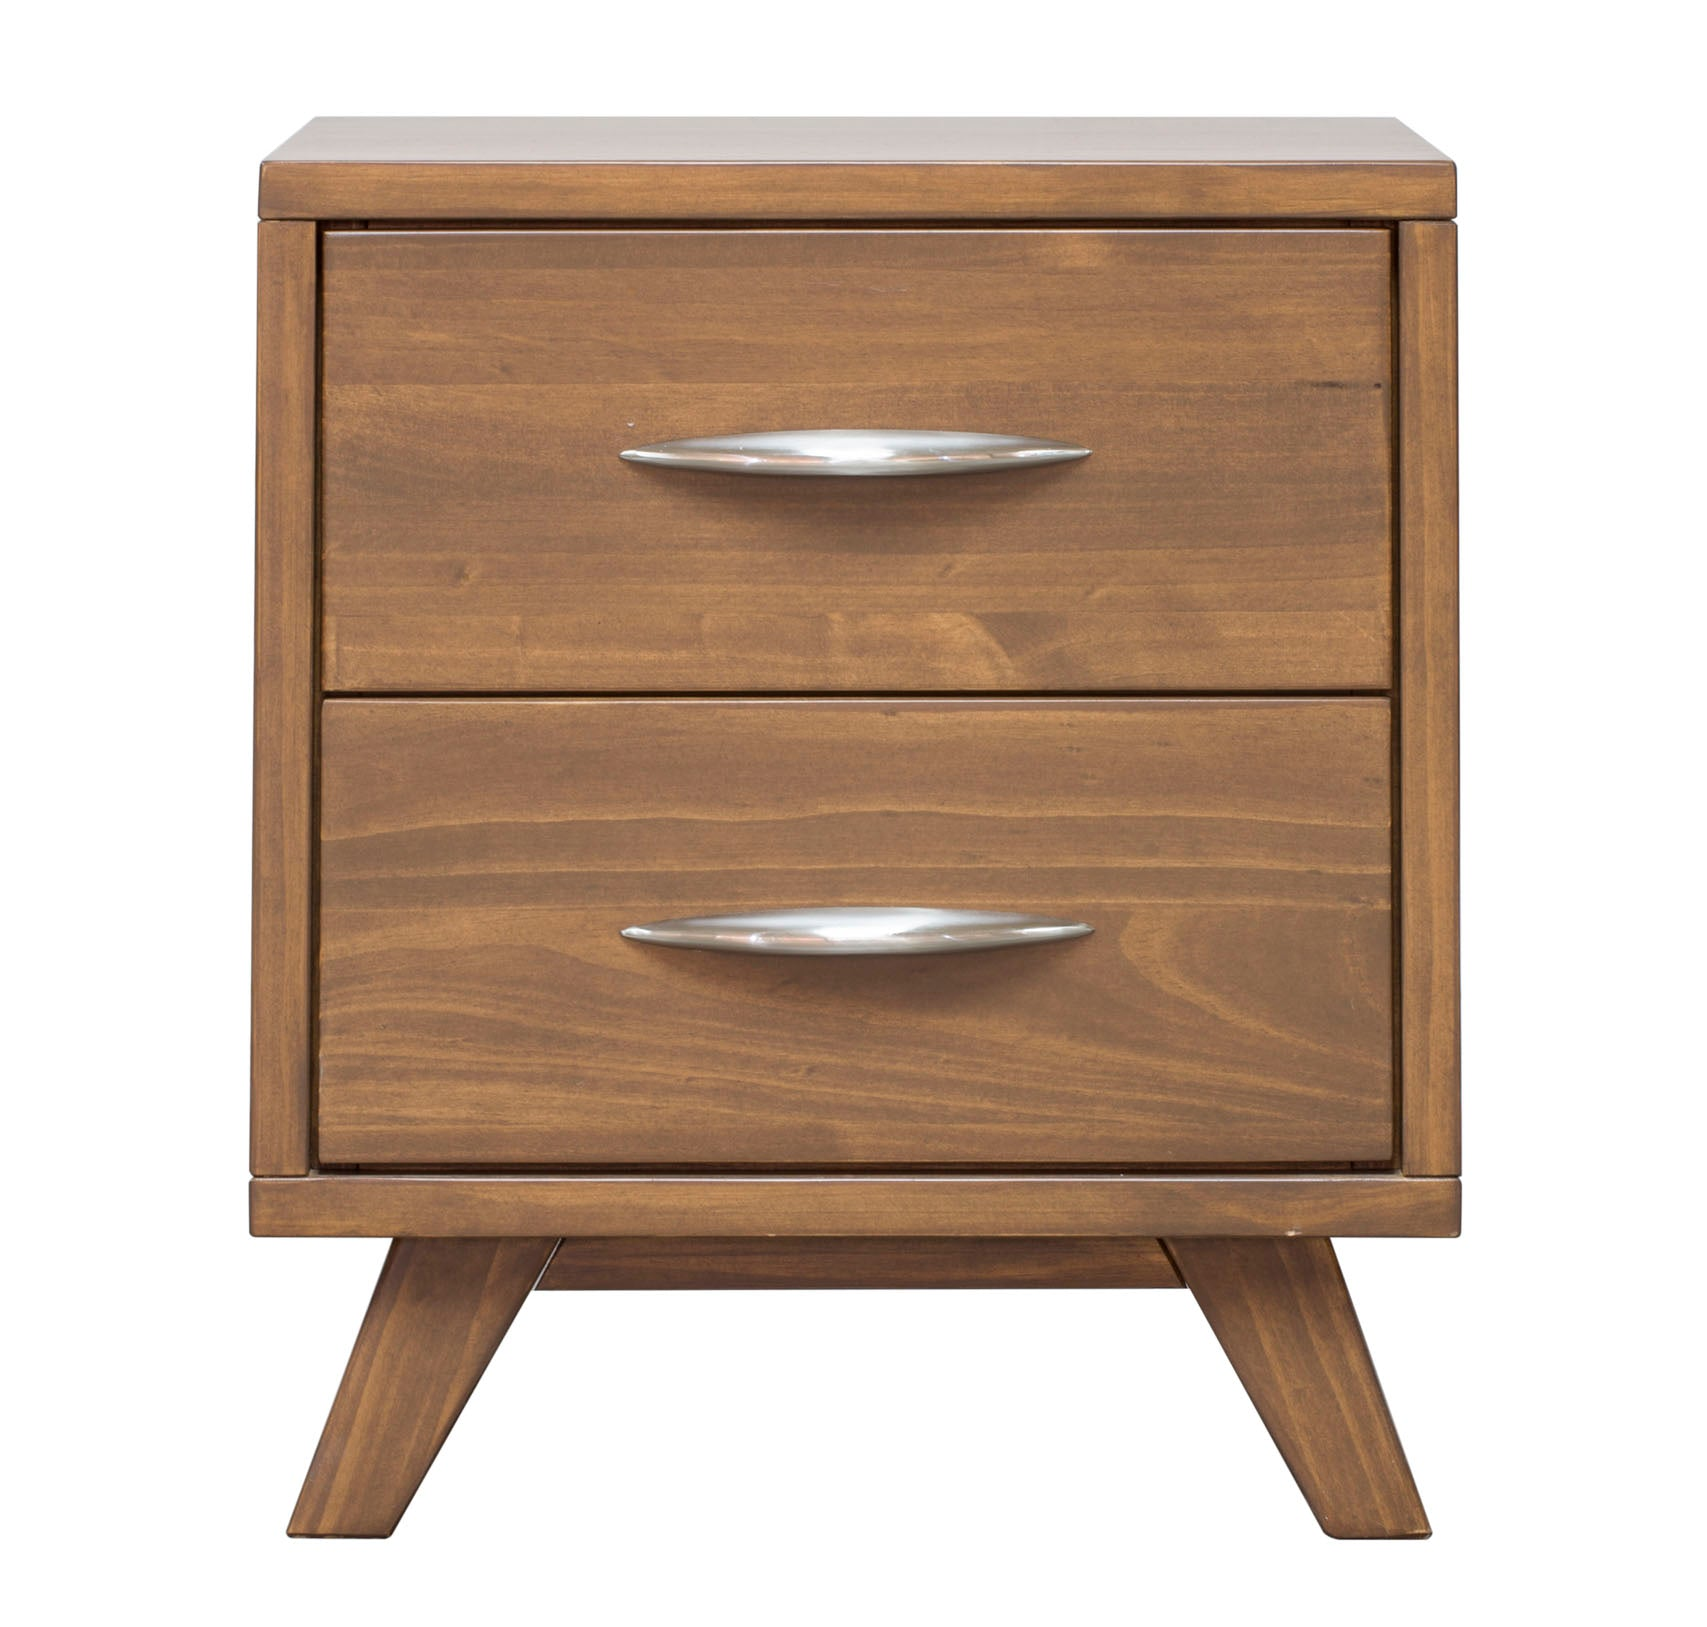 Soho Caramel Pine 2 Drawer Nightstand - MJM Furniture